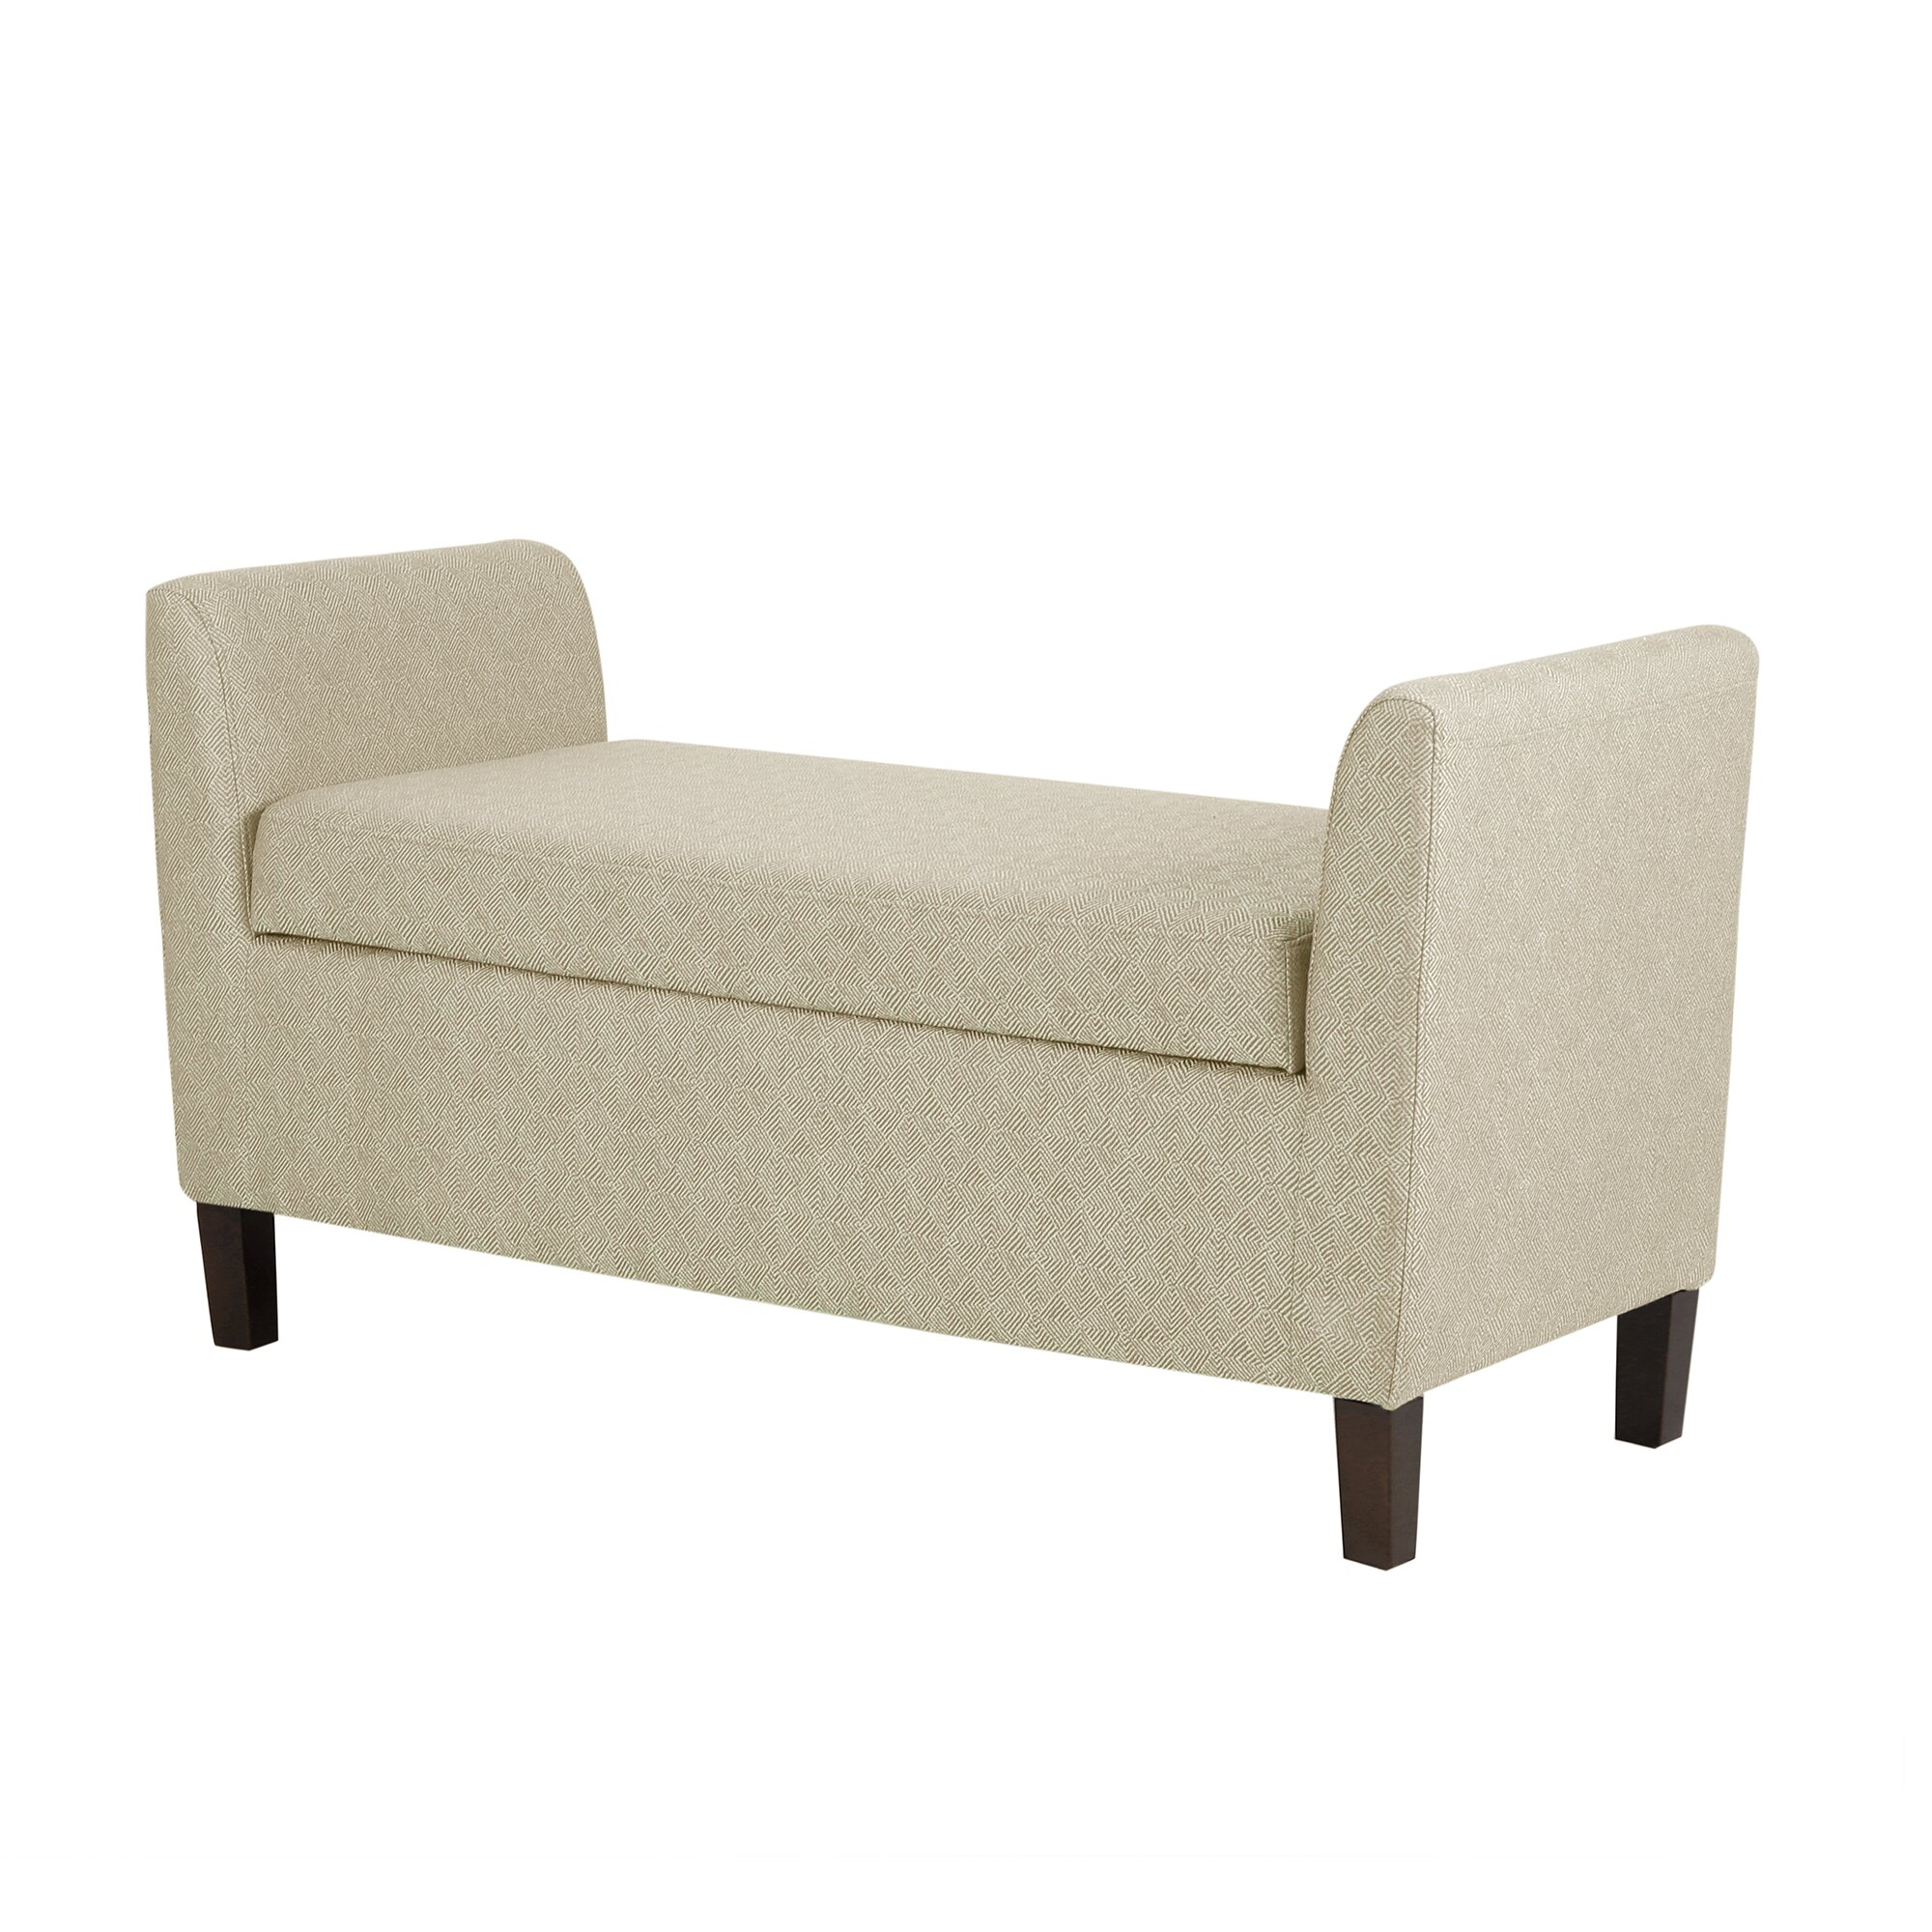 Bedroom bench with arms - Craig Upholstered Storage Bedroom Bench